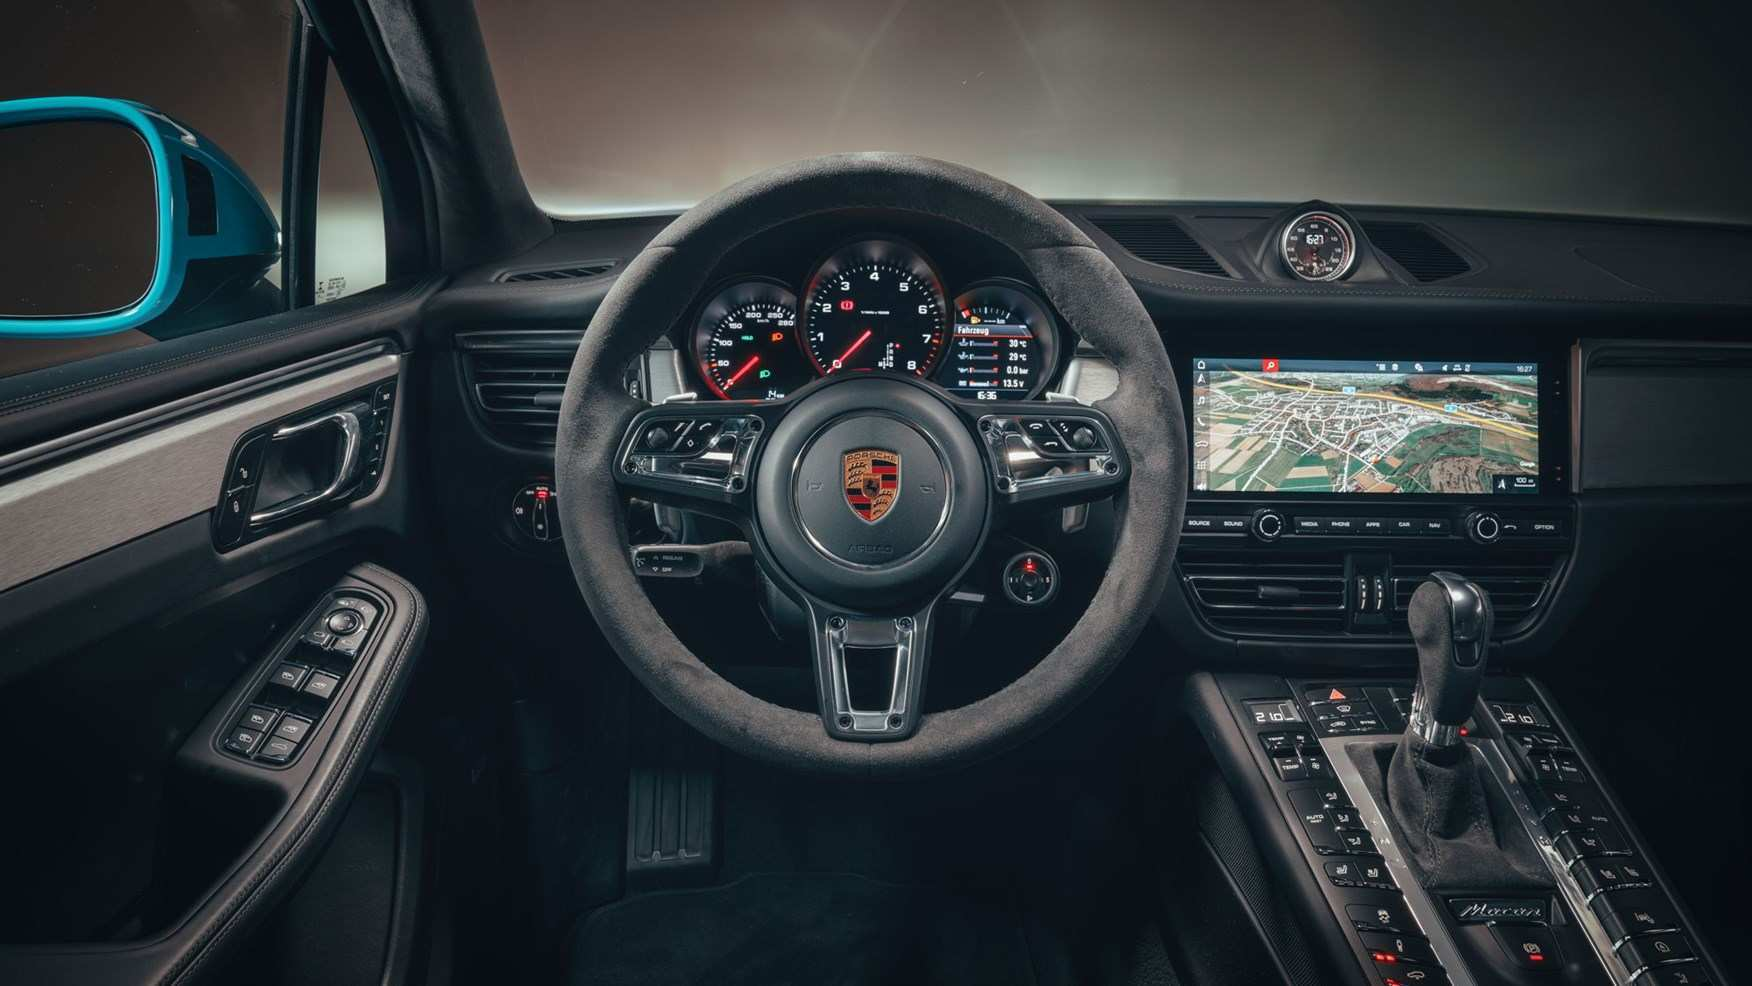 53 Best Review 2019 Porsche Macan Hybrid Pictures by 2019 Porsche Macan Hybrid